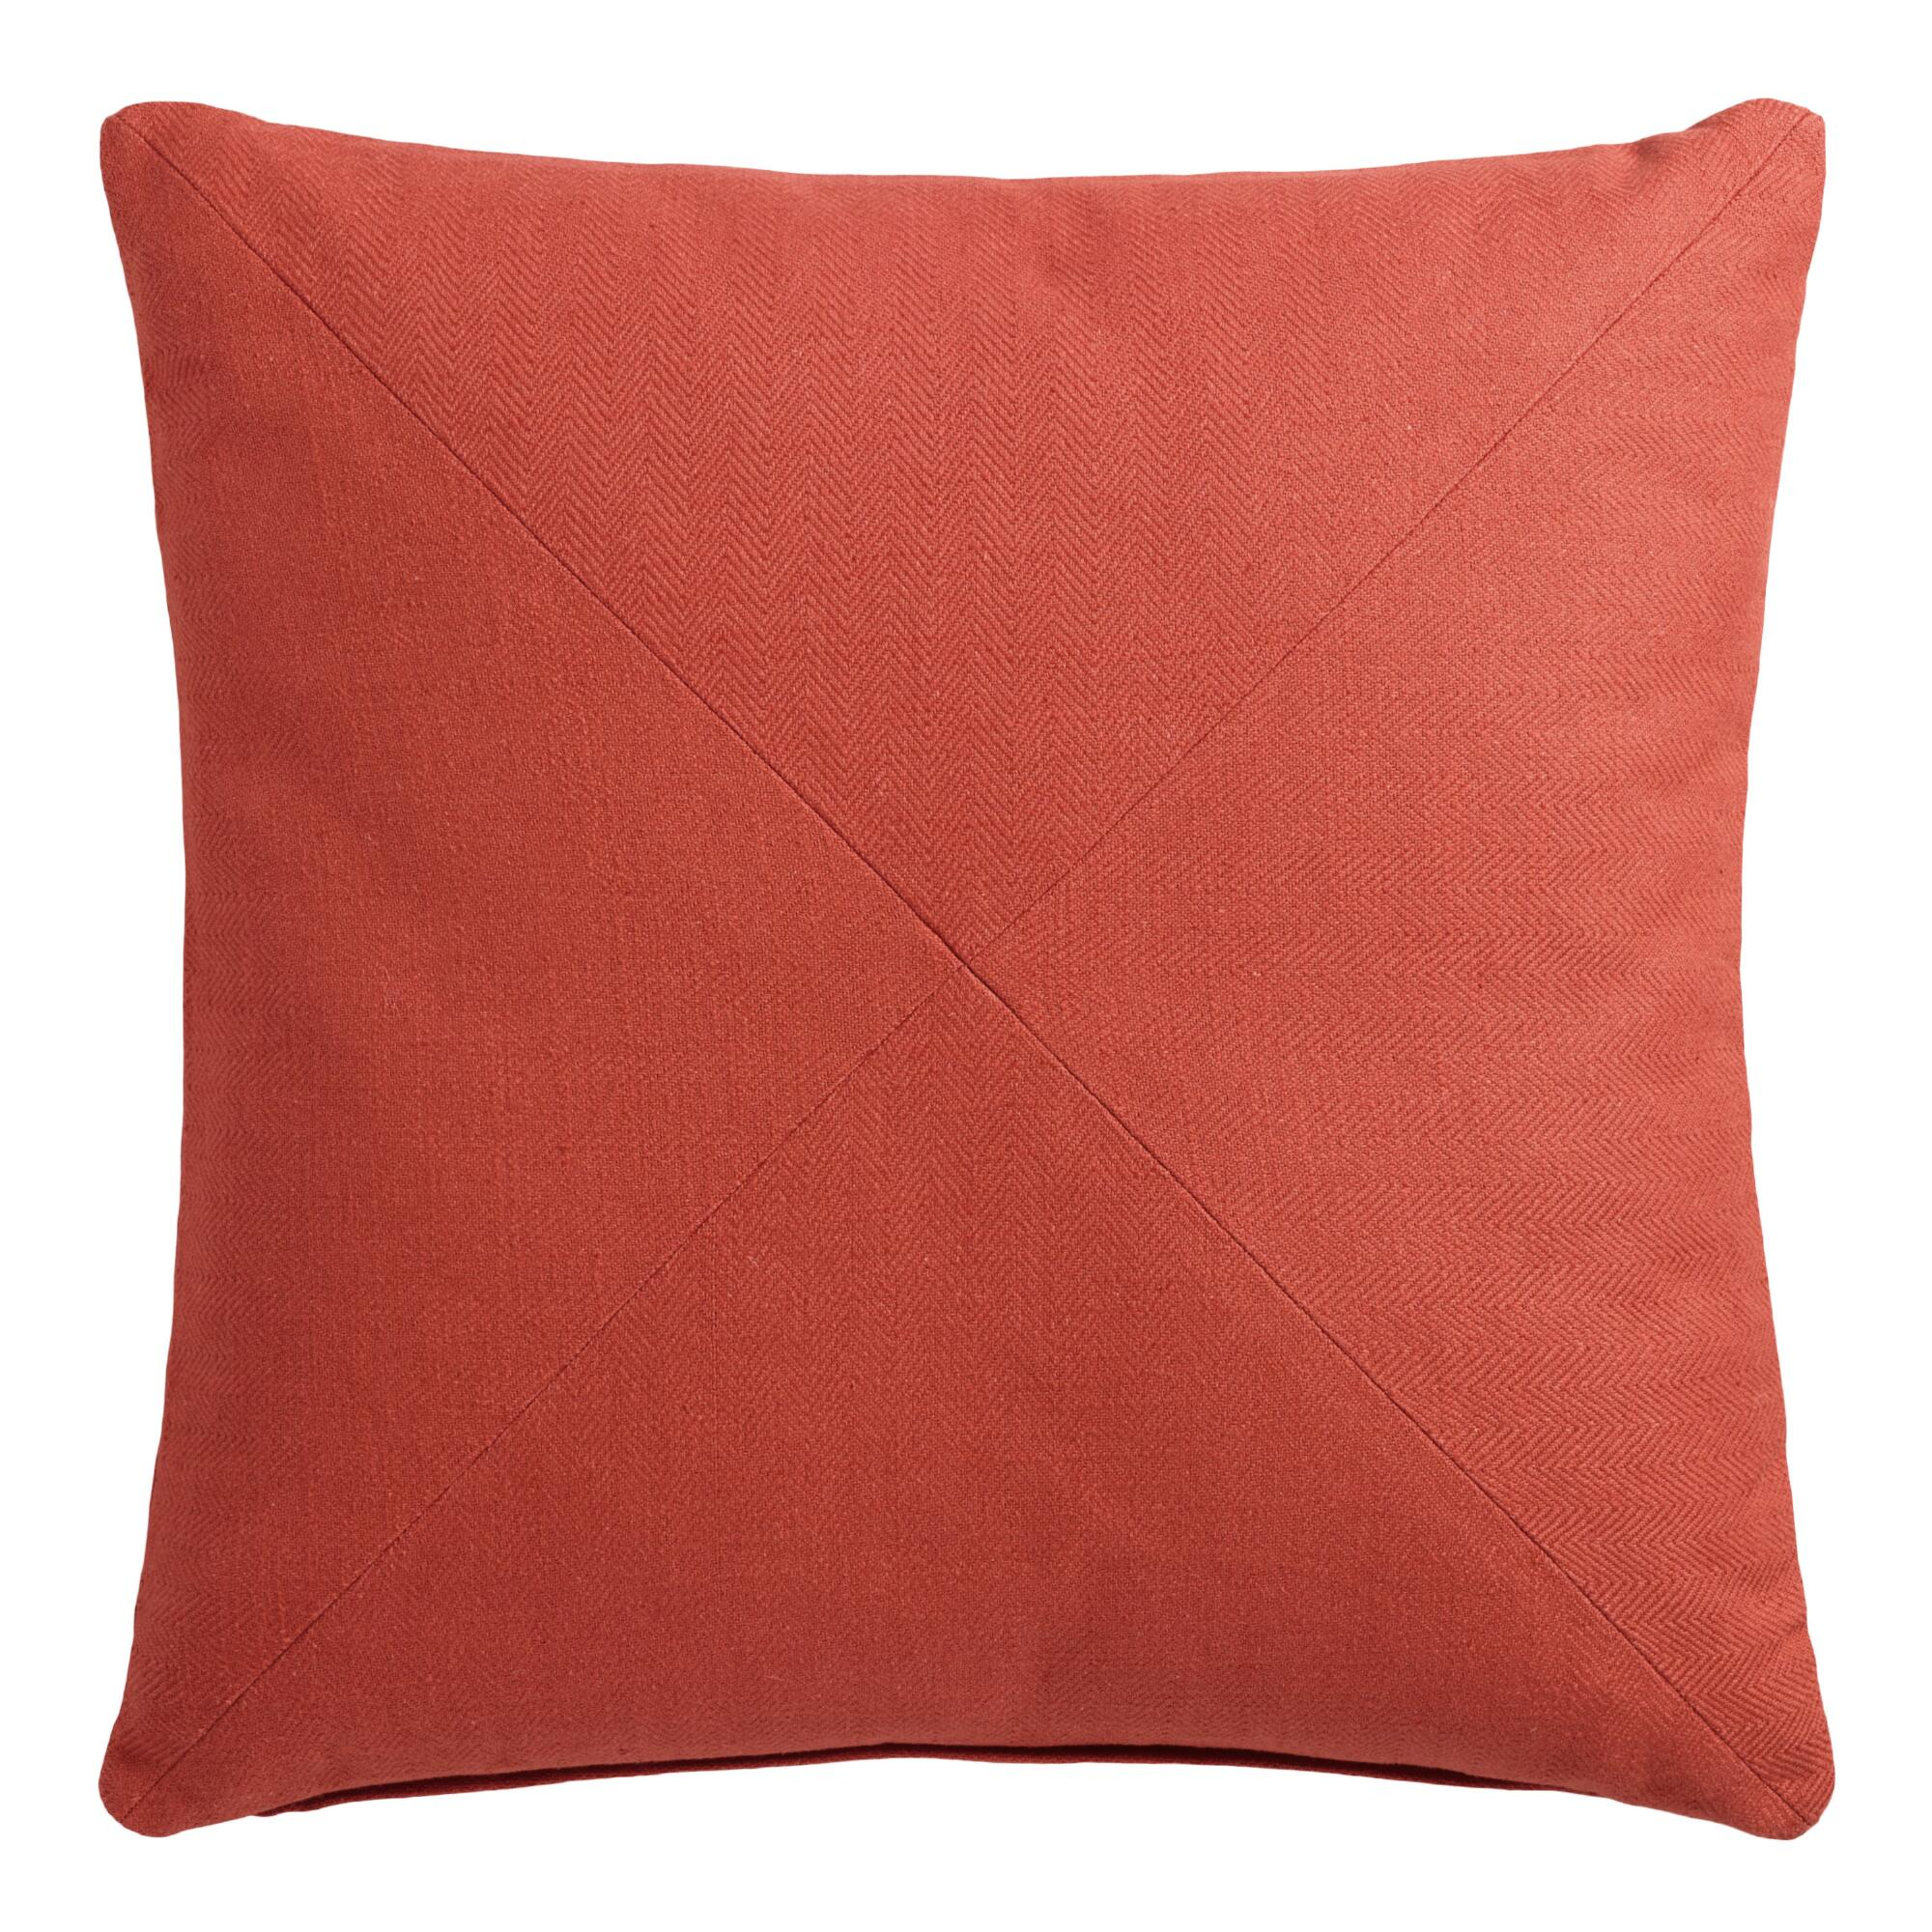 Orange Herringbone Cotton Throw Pillow World Market